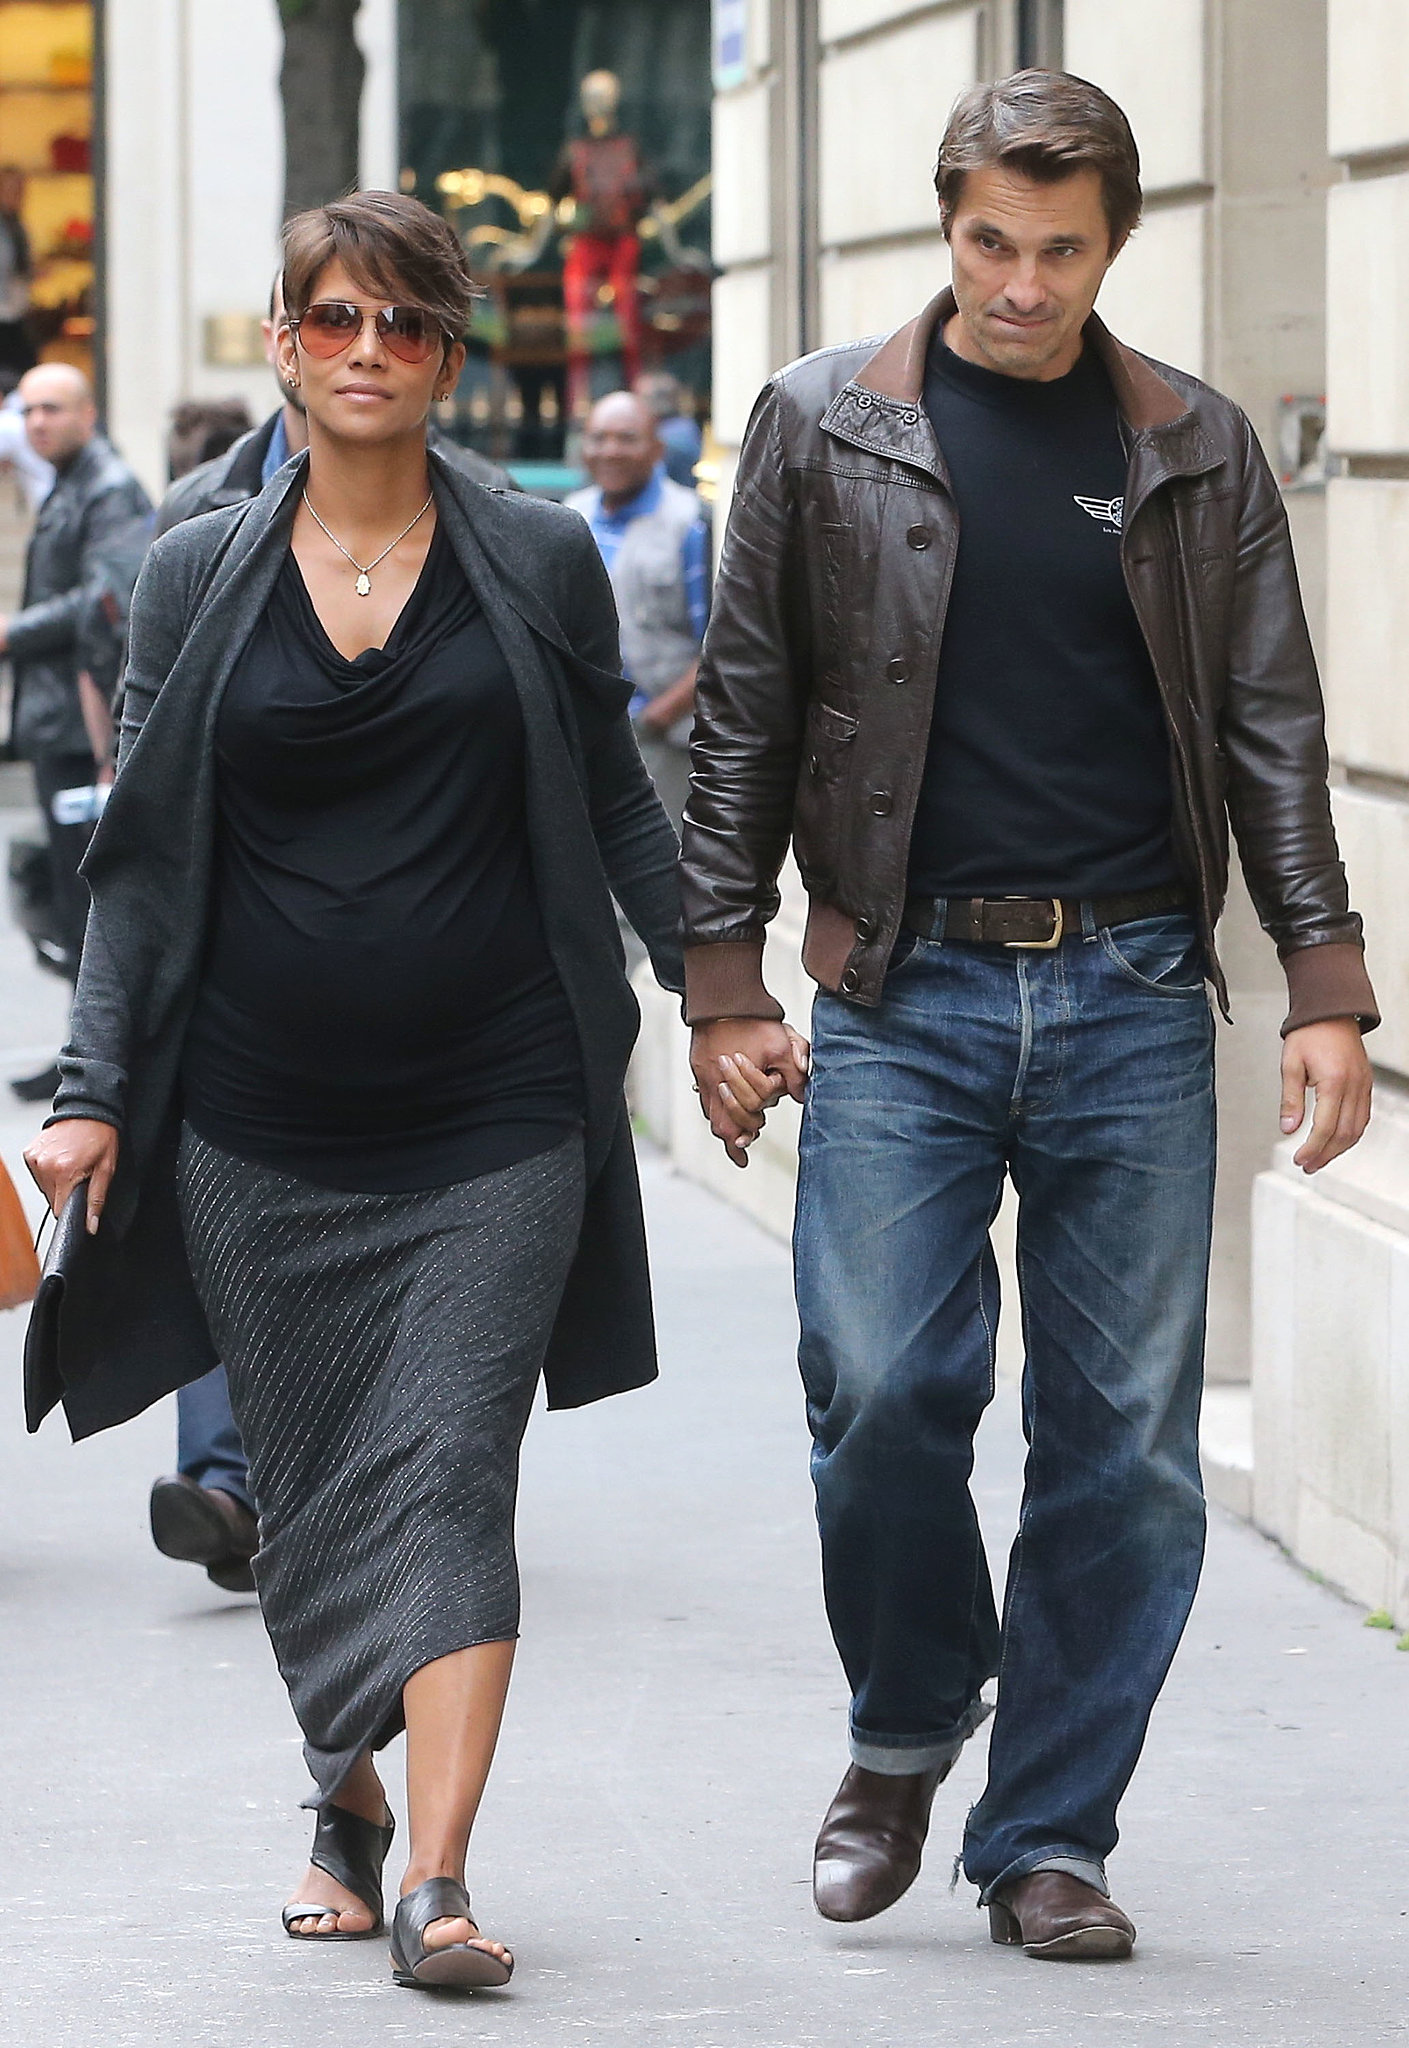 During a romantic stroll with beau Olivier Martinez in Paris, Halle layered up in a black draped top, an asymmetrical striped skirt, and a gray cardigan. Her monochromatic tone was subtle yet stylish.